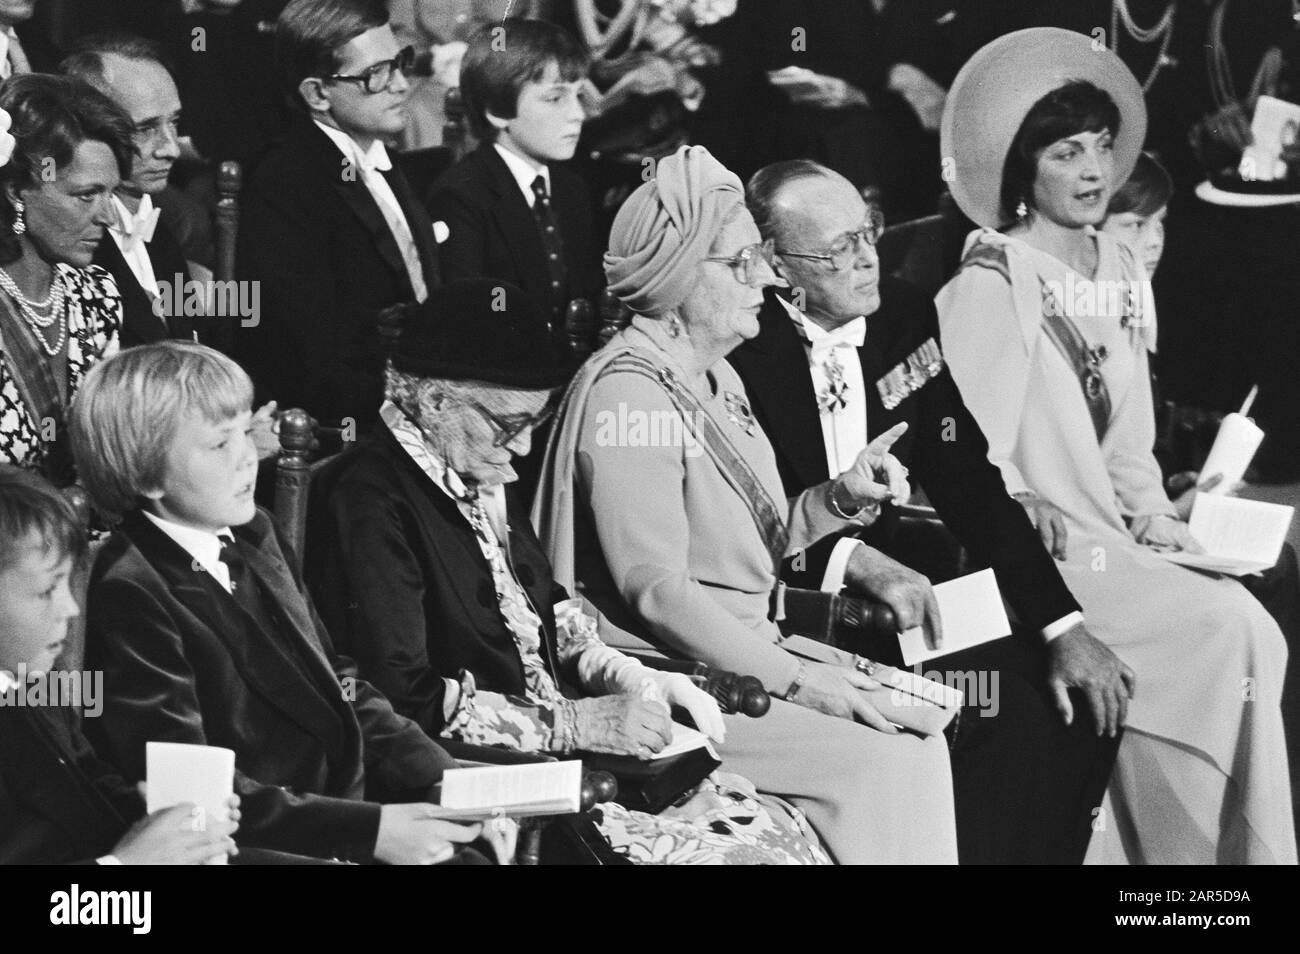 Throne change 30 April 1980  Inauguration in the New Church Annotation: 1st row of Prince Johan-Friso, Prince Willem-Alexander, Mrs. Gösta von Amsberg, Princess Juliana, Prince Bernhard, Princess Margriet Date: 29 July 1980 Location: Amsterdam, Noord-Holland Keywords: inaugurations, churches, succession of throne Personal name: Armgard zur Lippe-Biesterfeld, Bernhard, prince, Juliana, princess, Willem-Alexander, prince Stock Photo